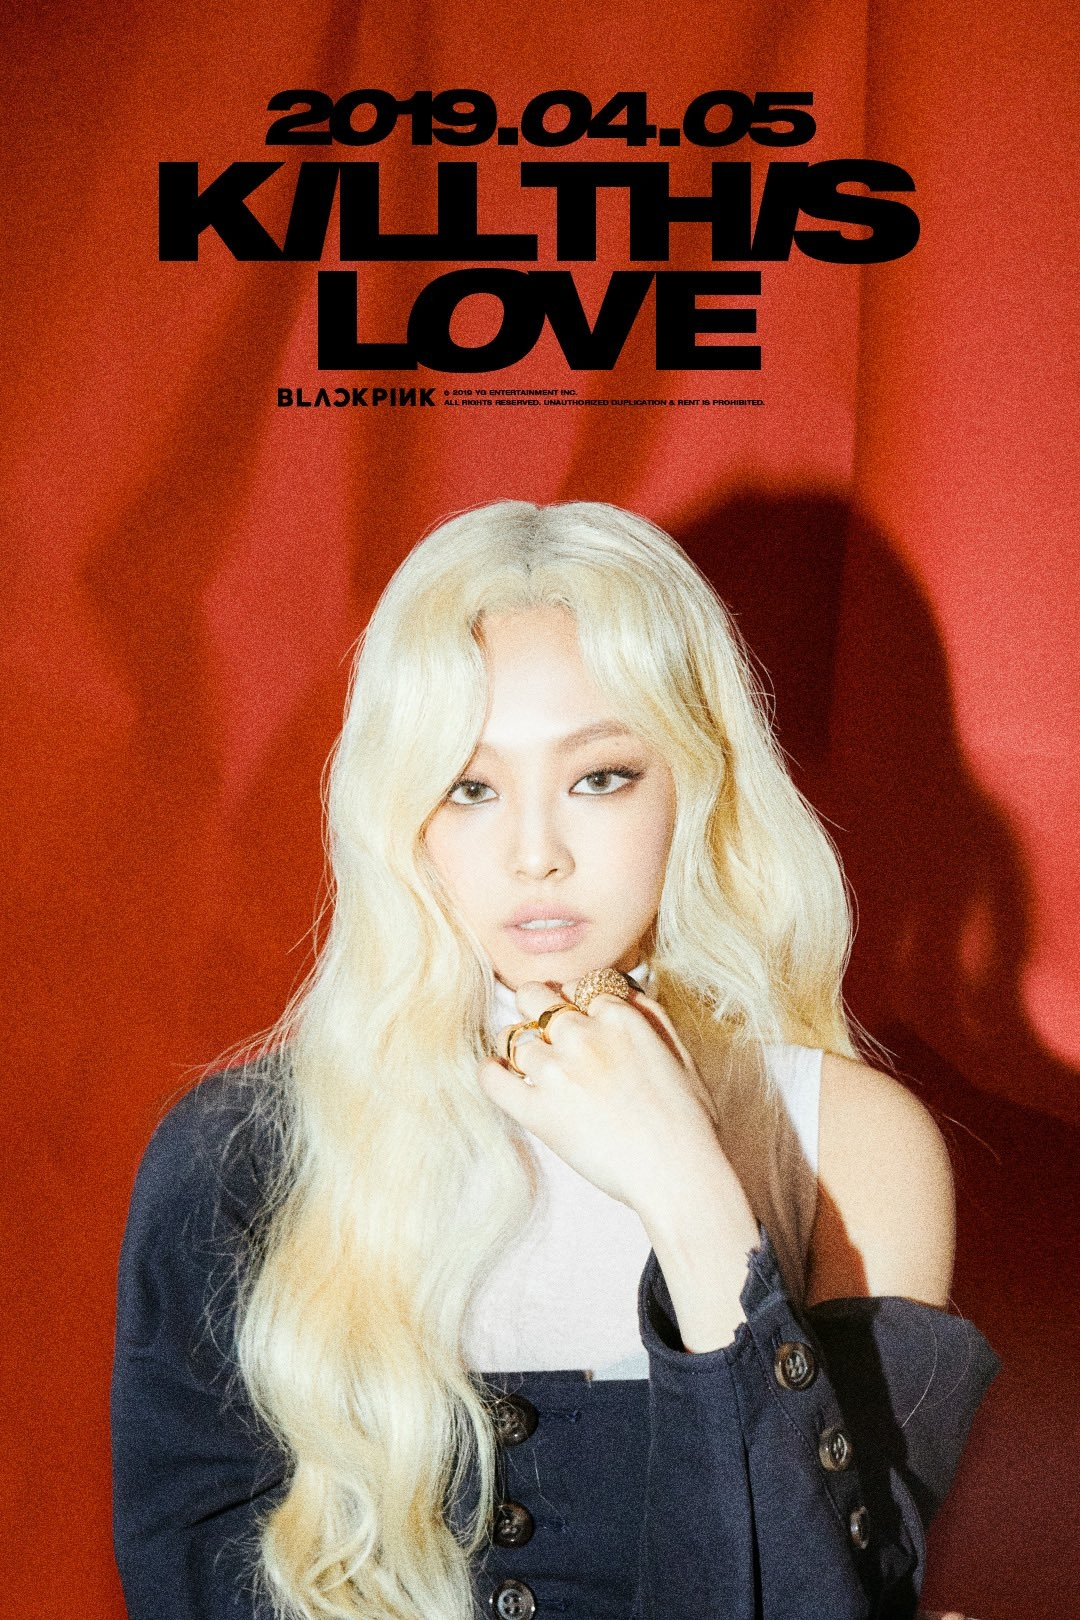 Jennie kill this love